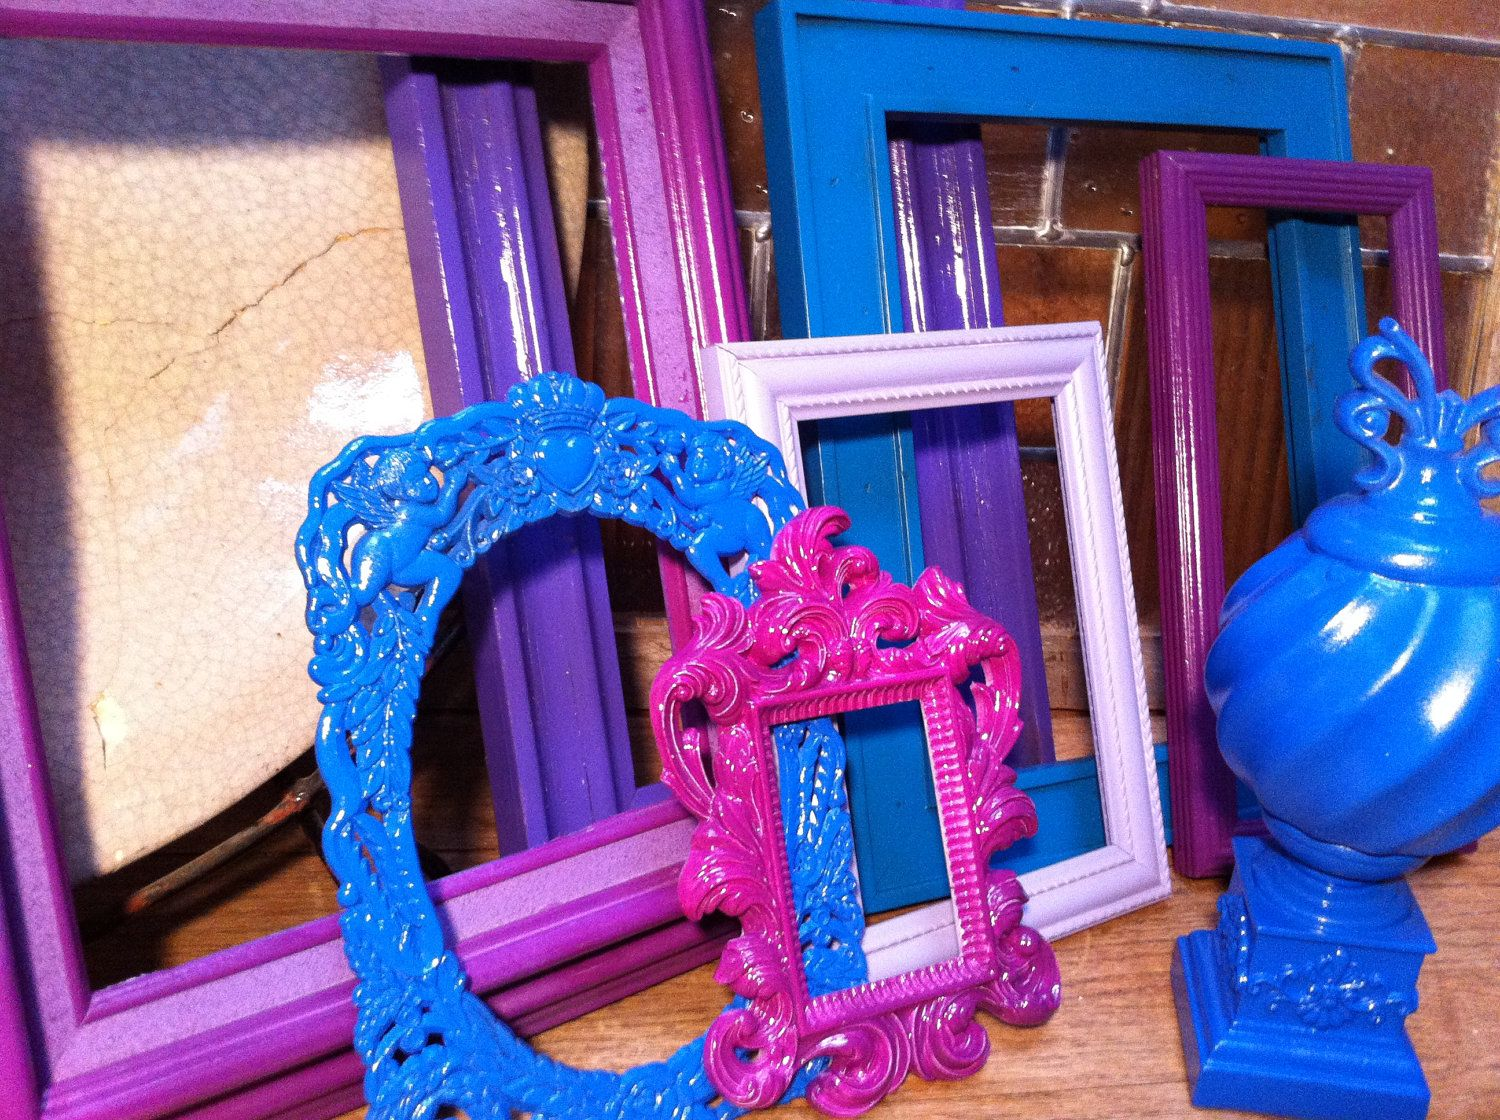 Frames Upcycled Painted Colorful Home Decor Purple Blue Whimsical Decor My House Will Look